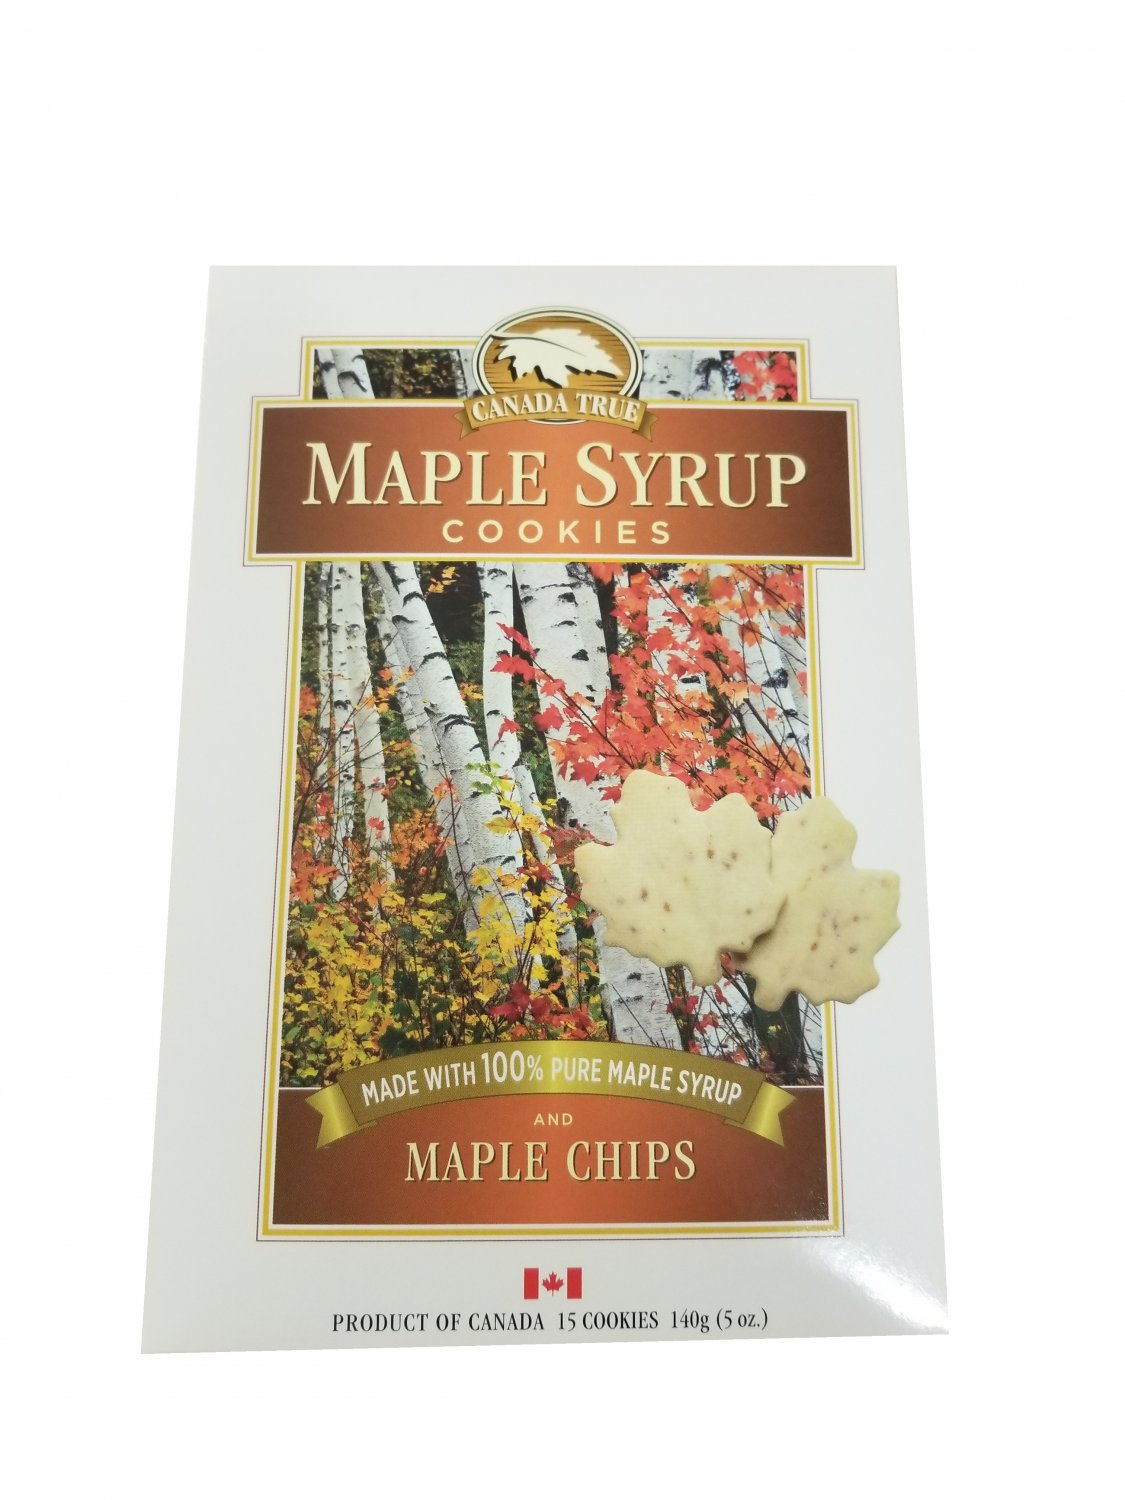 Maple Syrup Cookies with 100% Pure Maple Syrup and Maple Chips